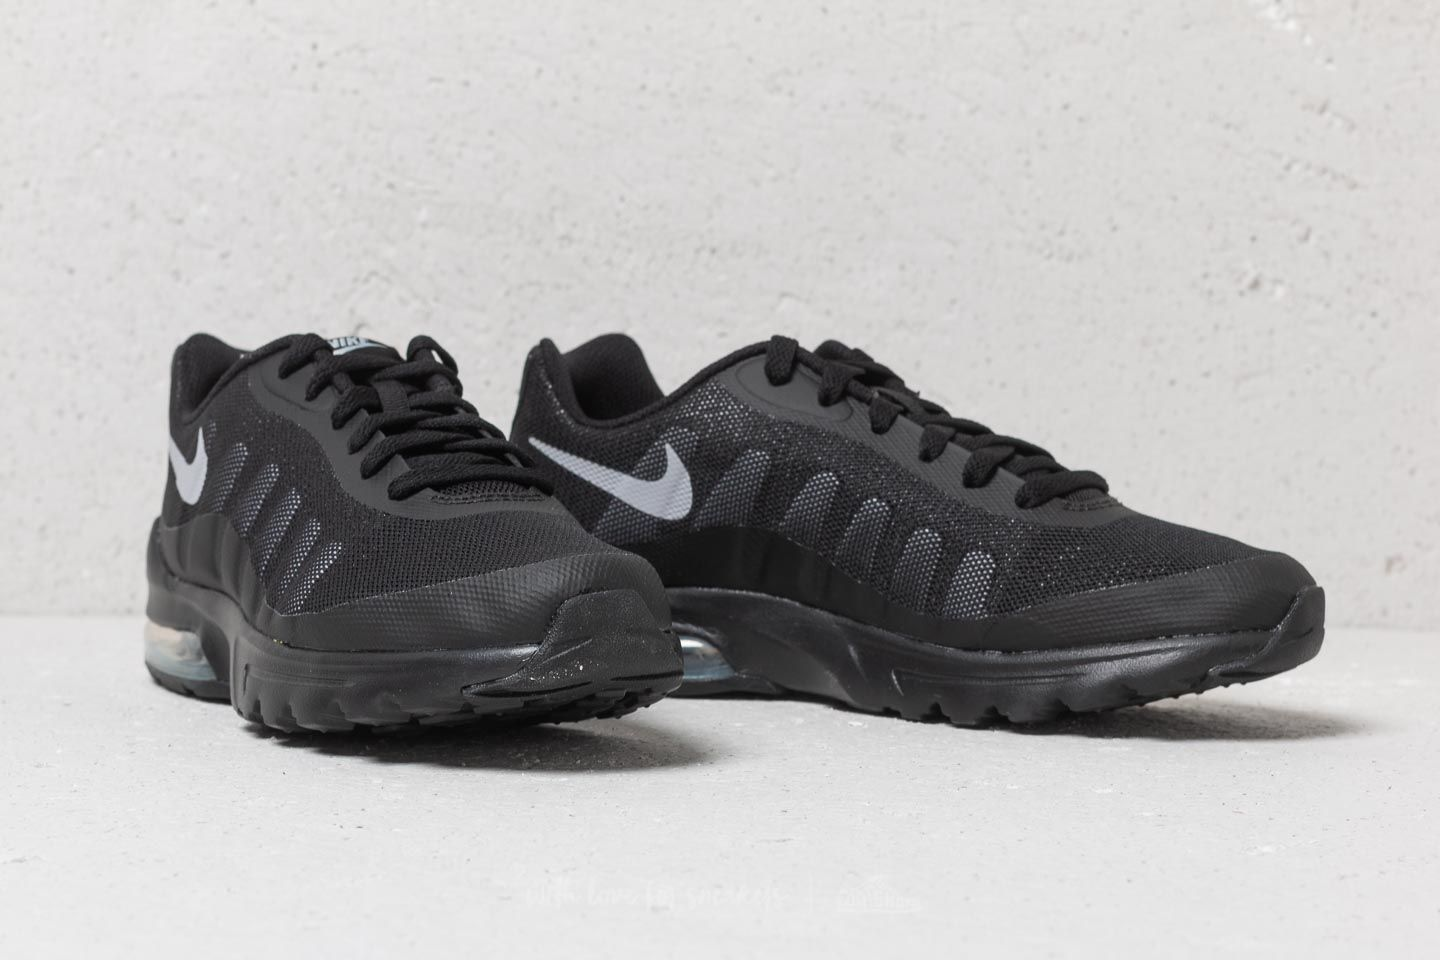 Nike Air Max Invigor (GS) Black  Wolf Grey at a great price 73 e4aca028f14a